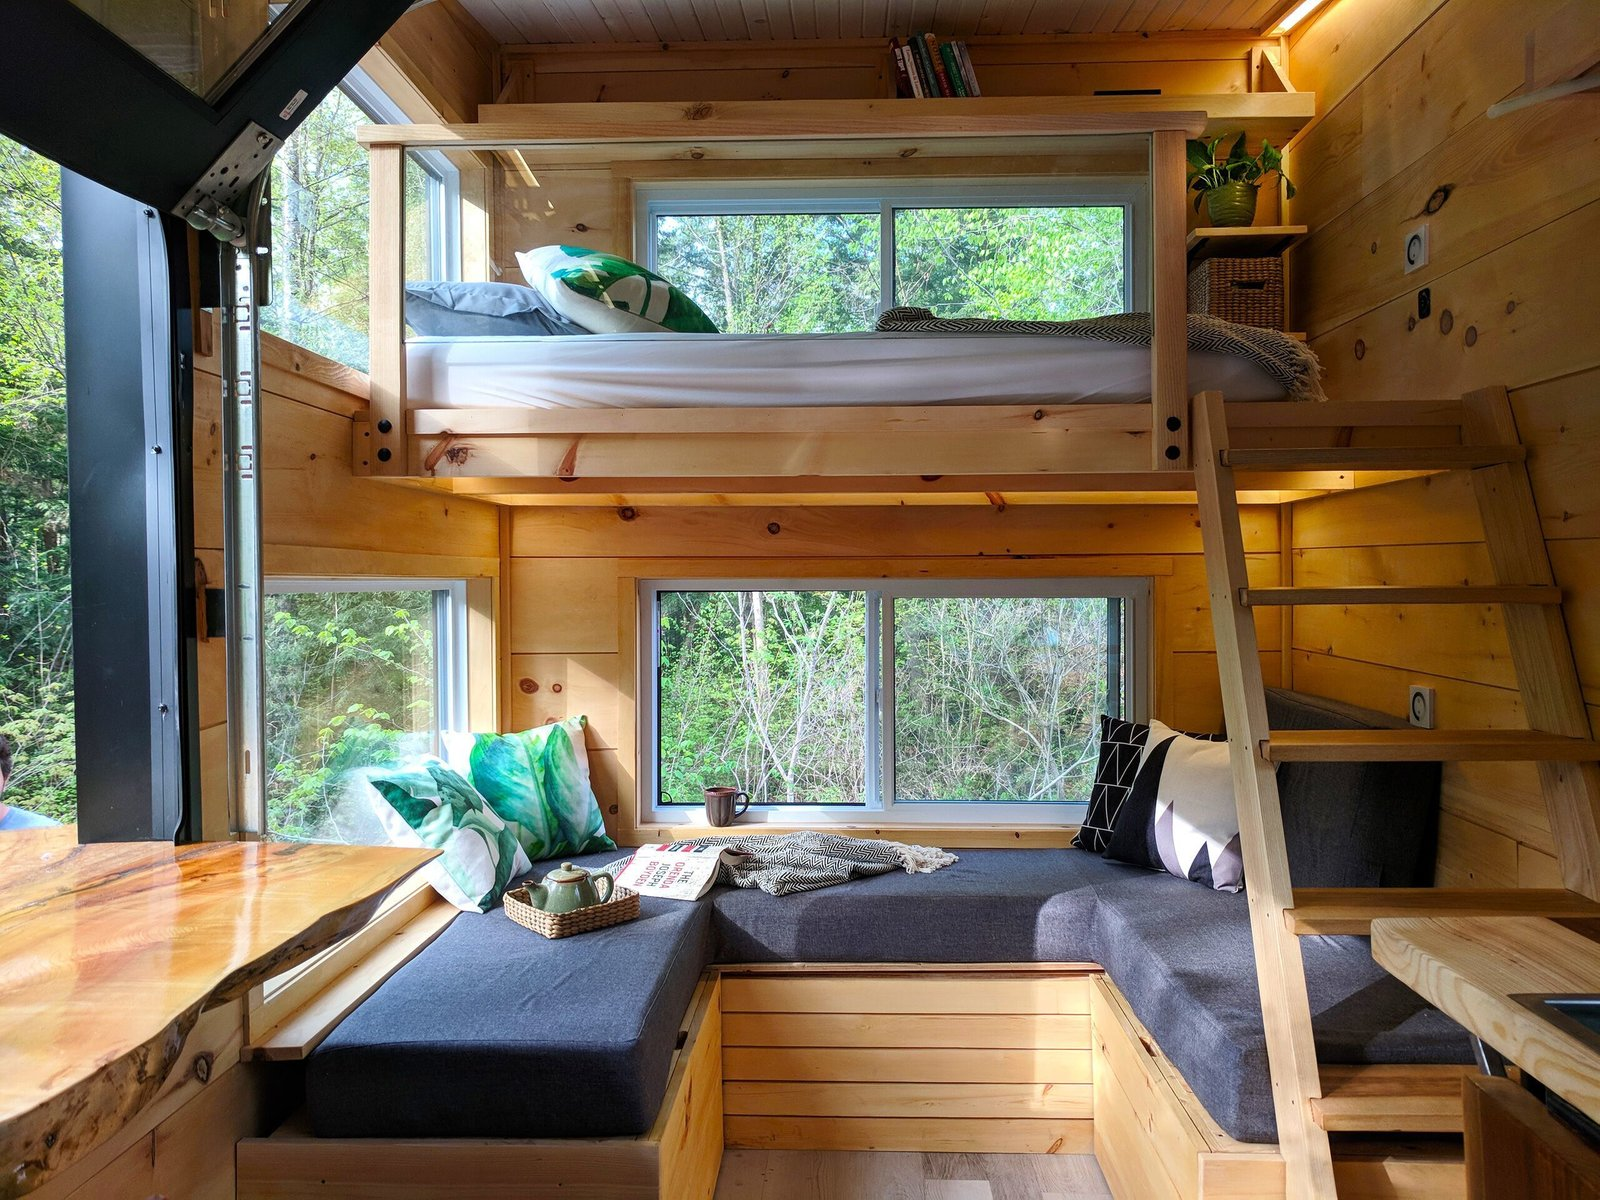 Cabinscape cabin bunk beds